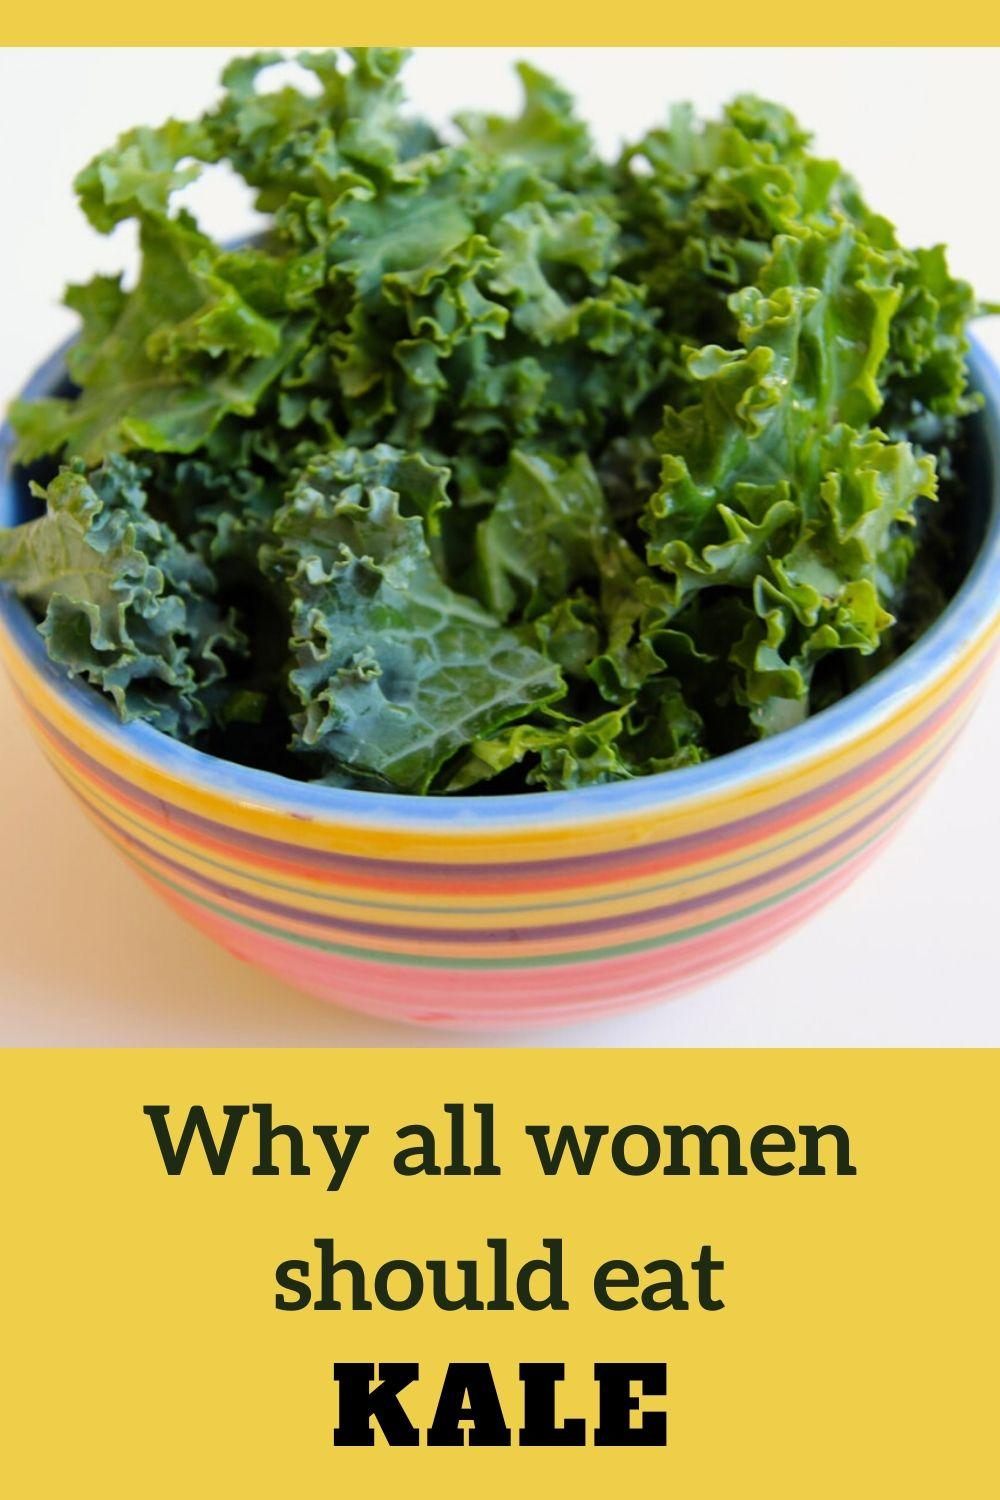 the benefits of kale for women's health